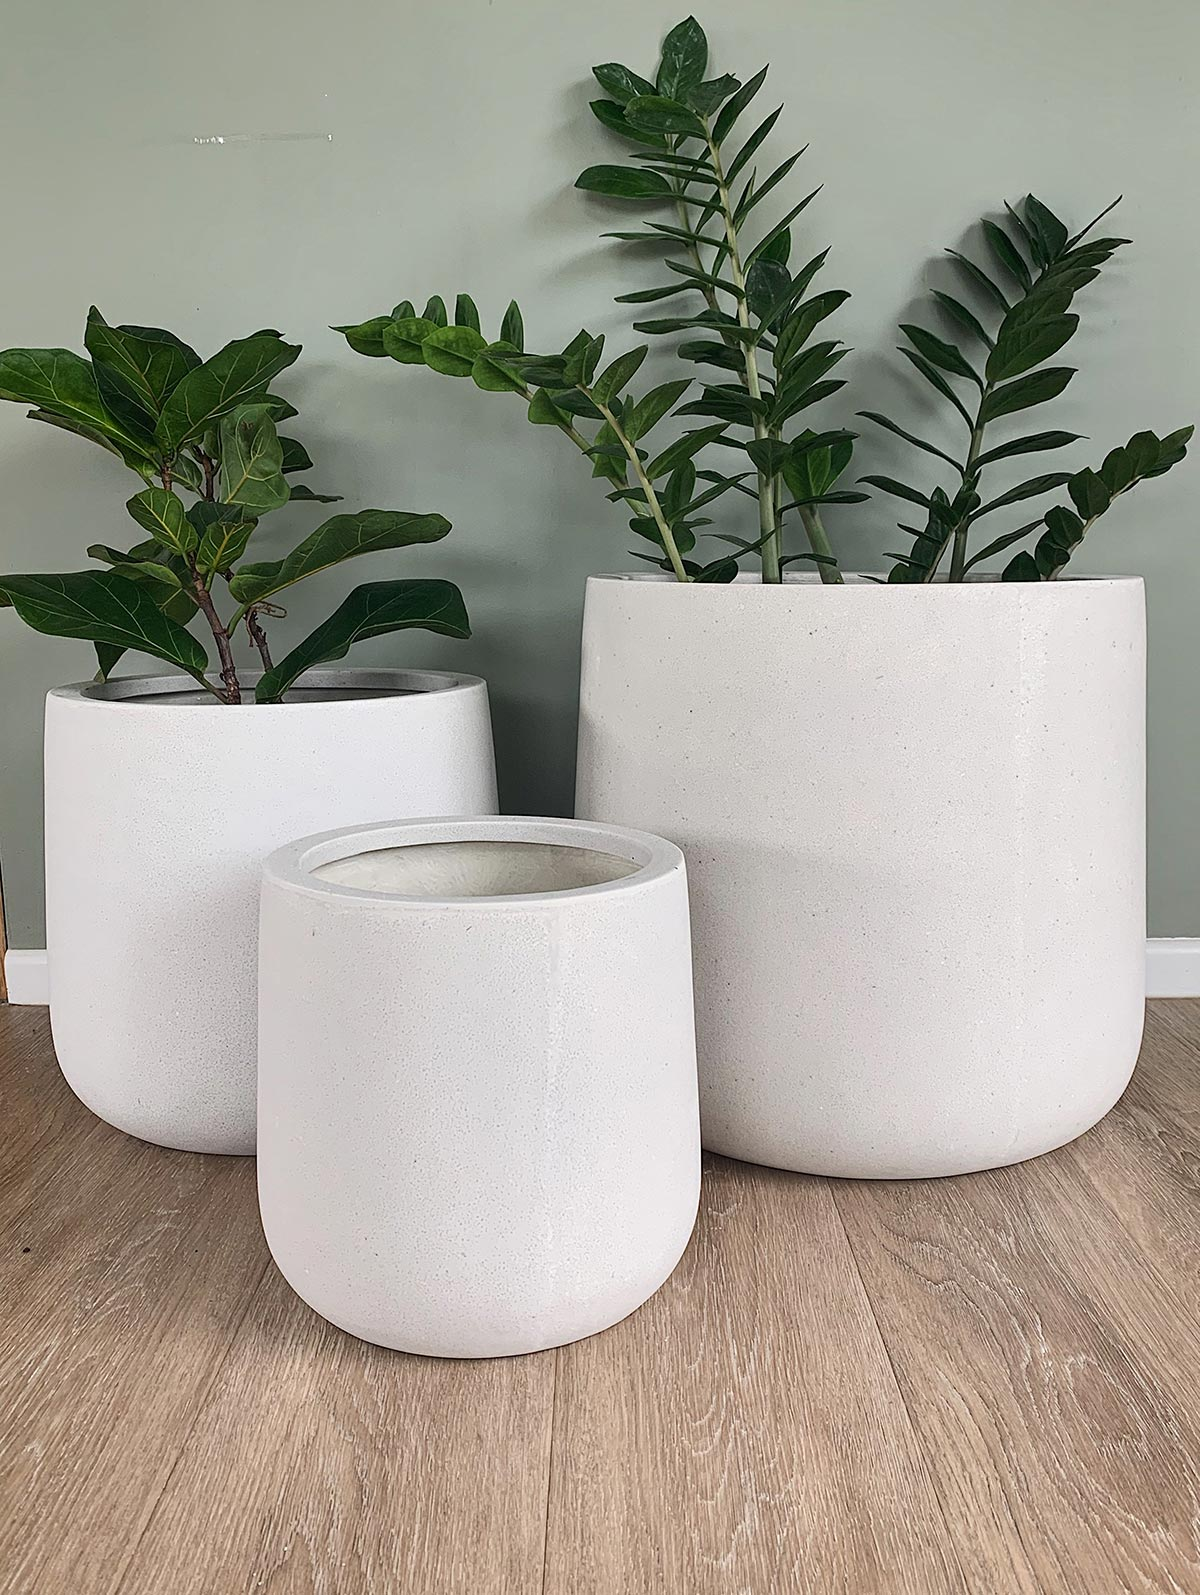 Bianca Lite Cylinder Planter pots in different sizes from The Green Room